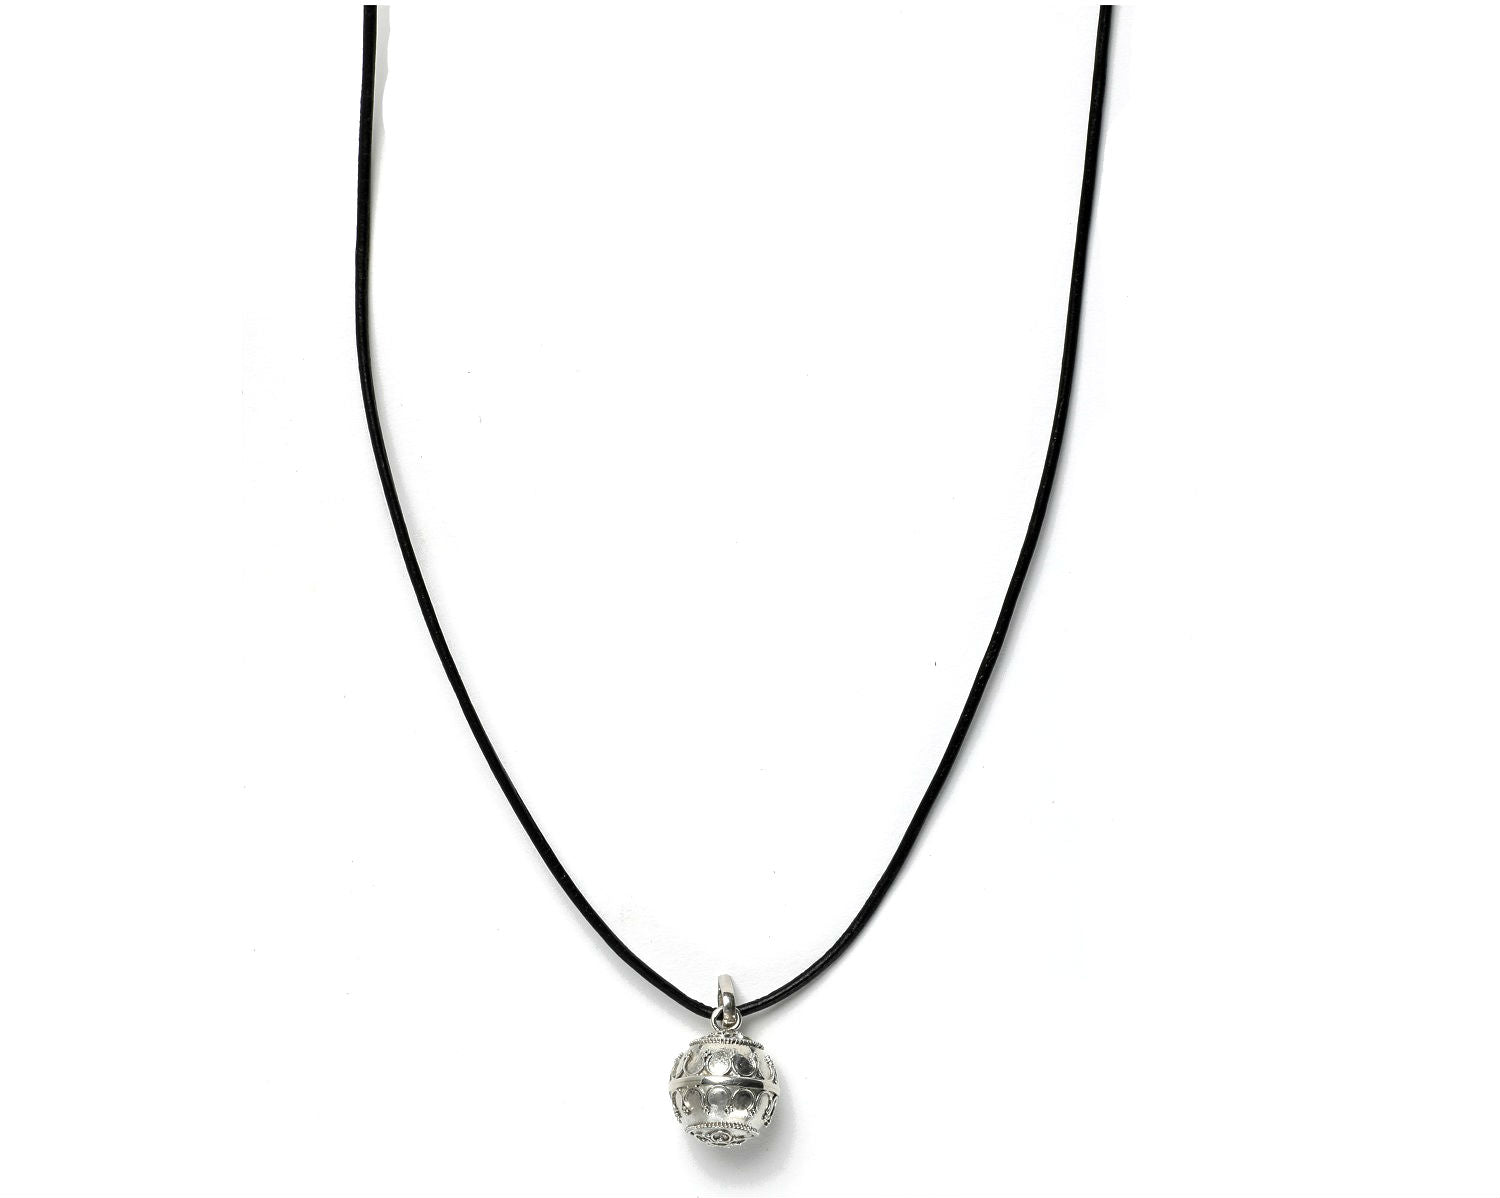 Harmony ball pendant strung in a black leather cord